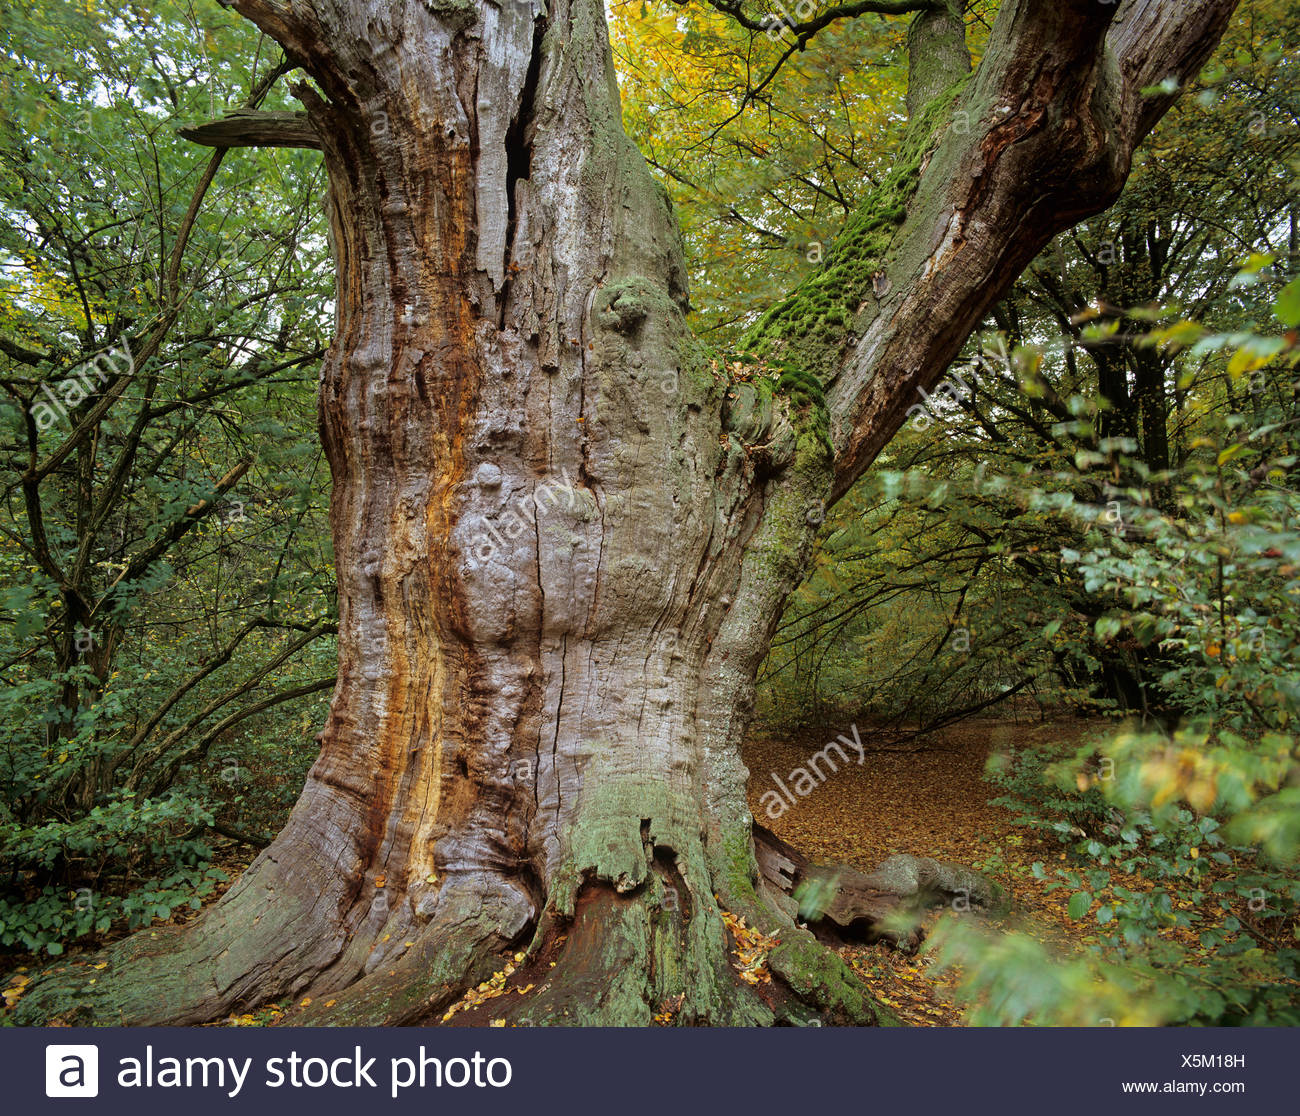 Old oak tree (Quercus sp.), jungle at Sababurg castle, Reinhardswald forest region, Hofgeismar, Lower Saxony, Germany, Europe - Stock Image